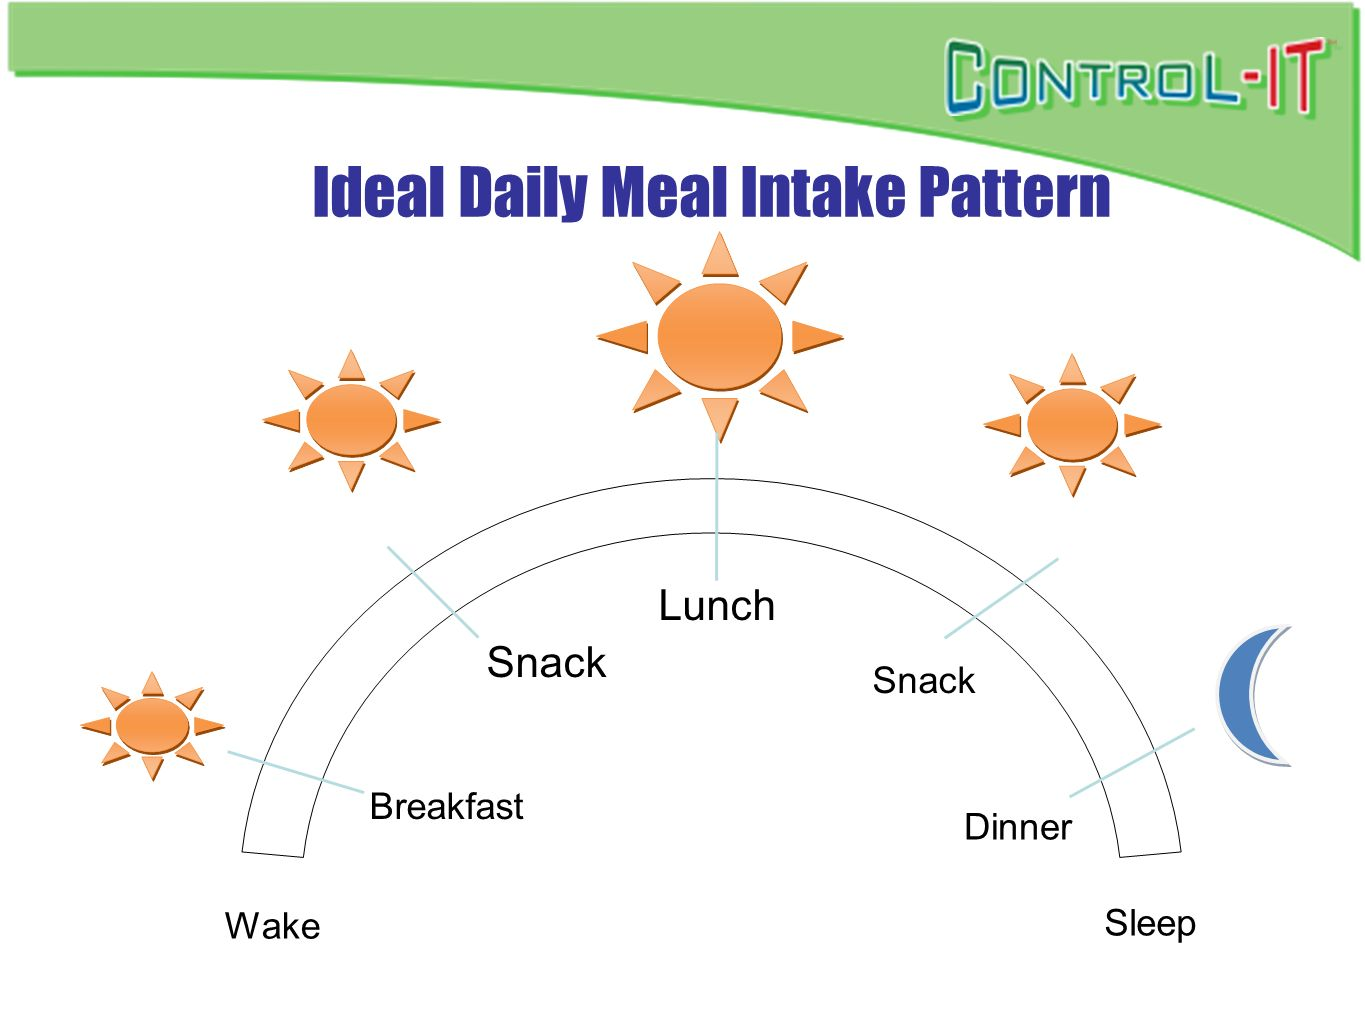 Ideal Daily Meal Intake Pattern